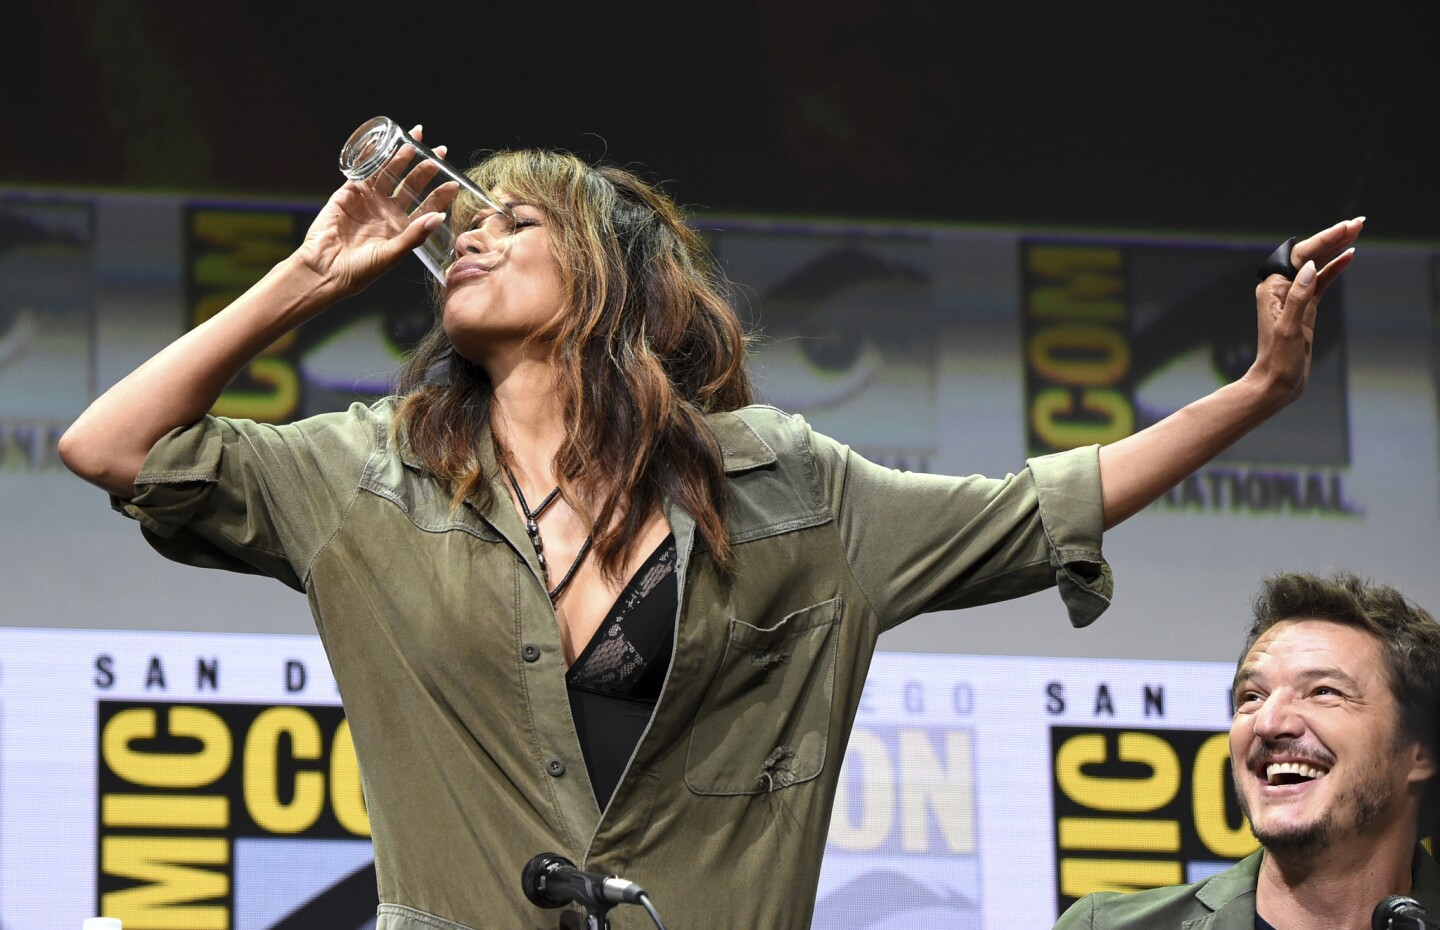 Halle Berry has a drink on stage.